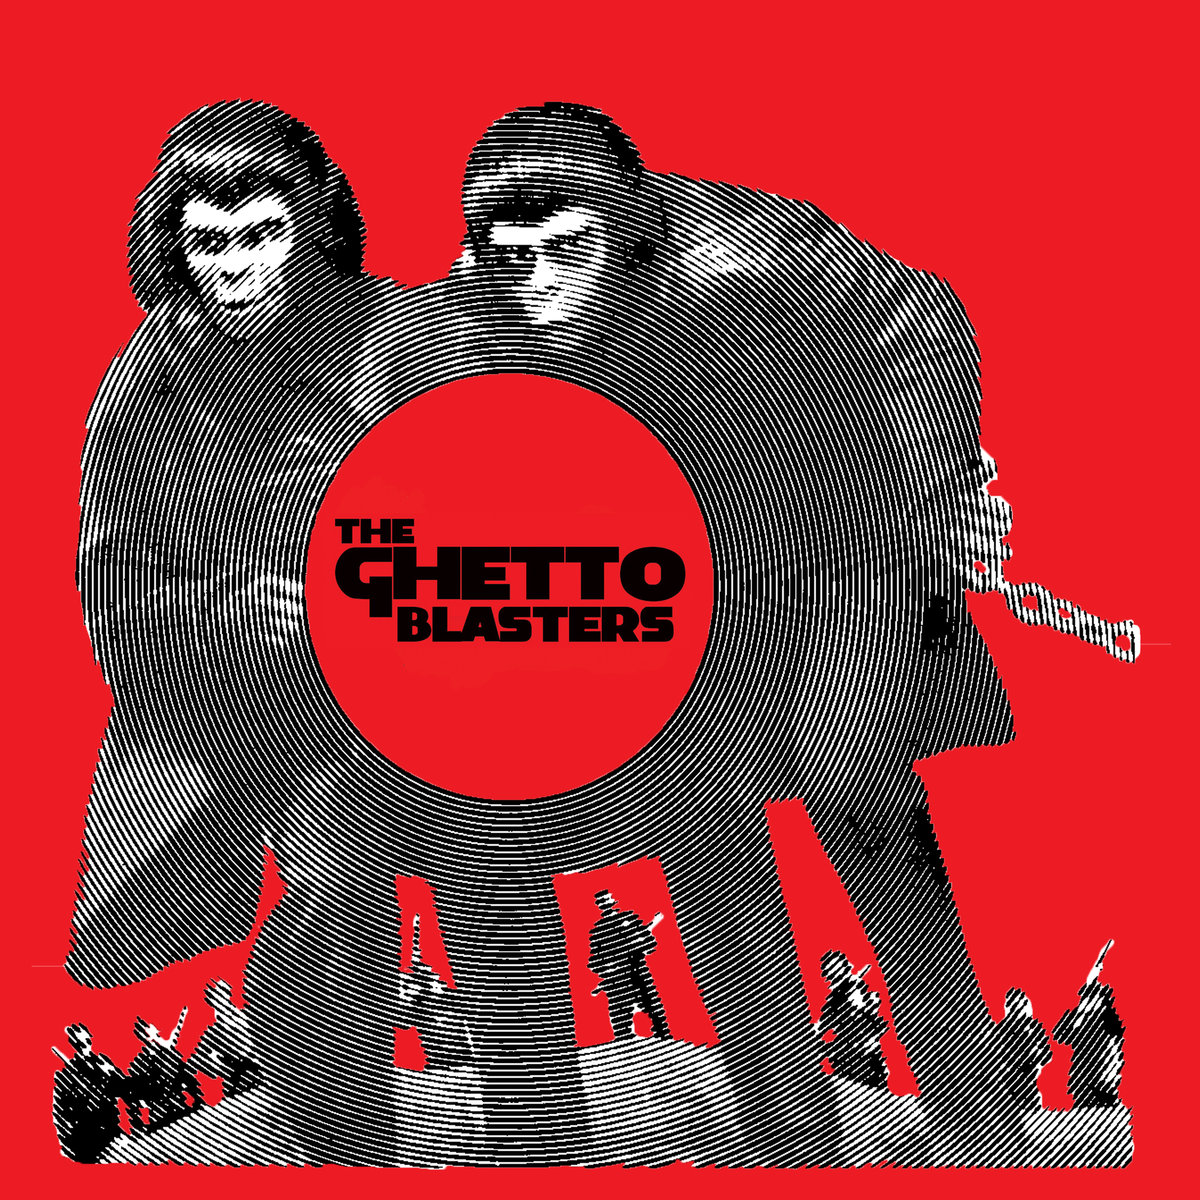 The Ghetto Blasters Hot Rocks Too Loose 7 Quot Platenboer